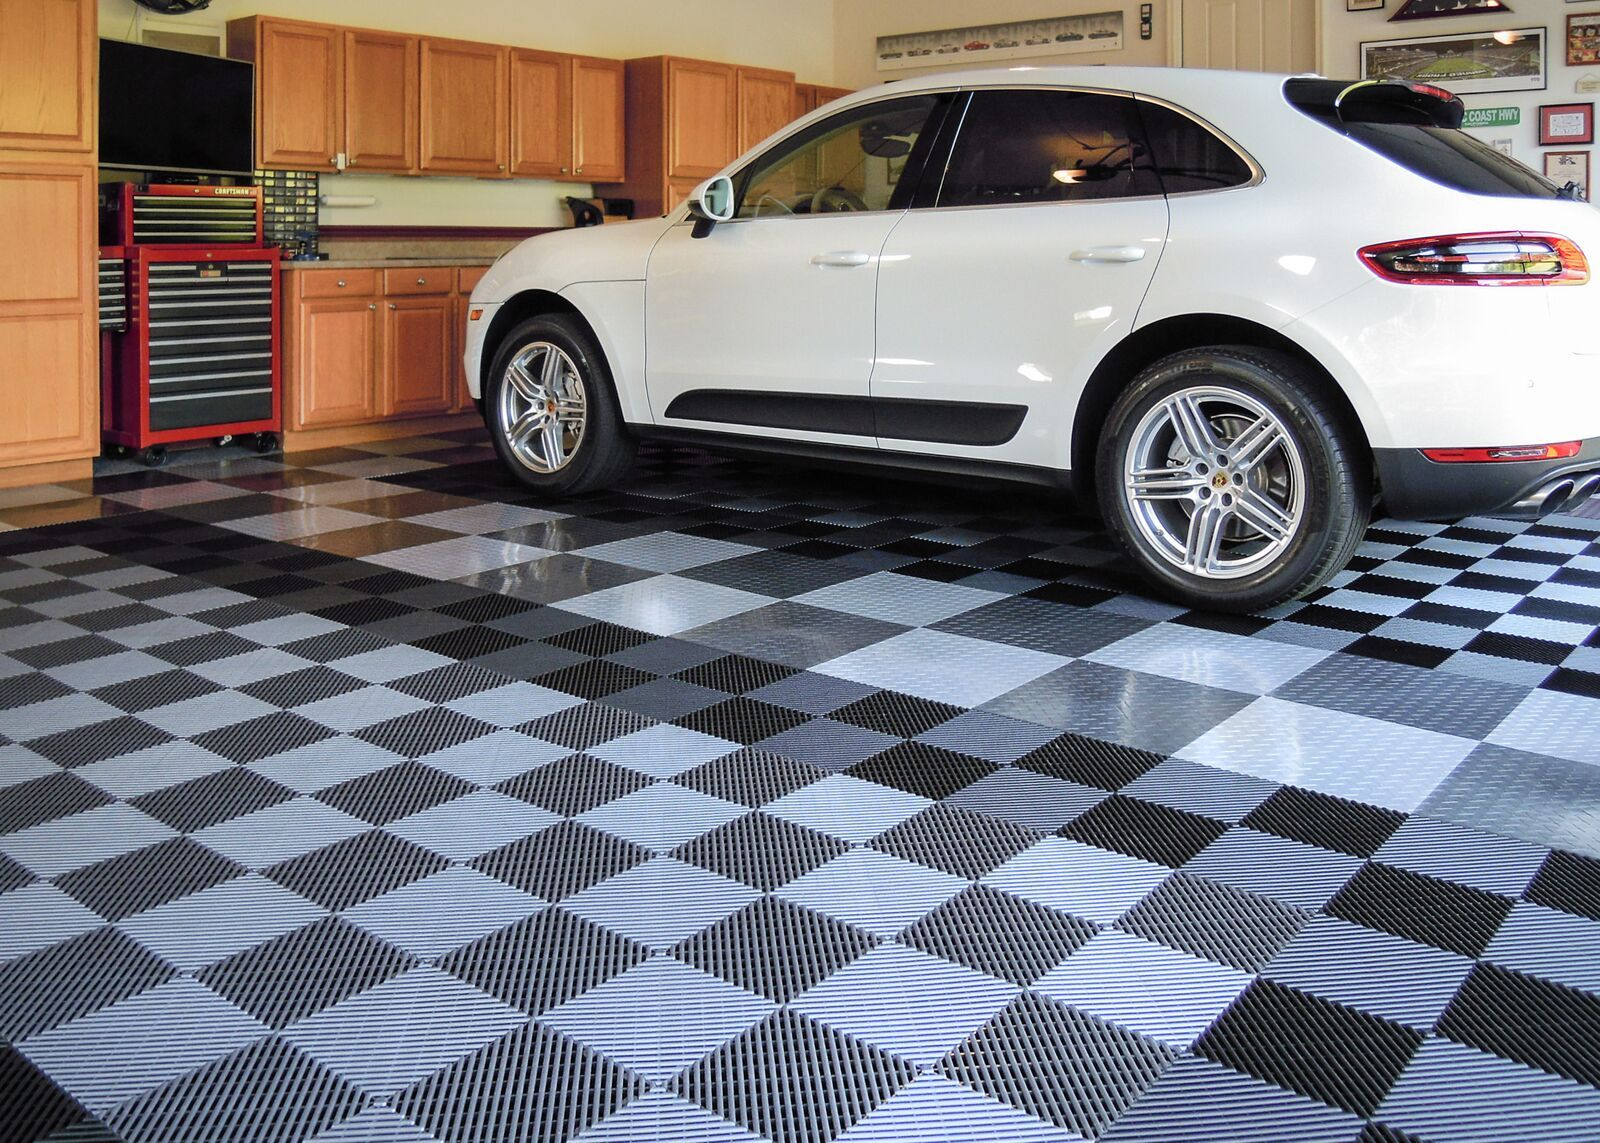 Garage Floor Tiles That Drain Race Deck Free Flow Drain Top Tiles Interlocking Garage Flooring